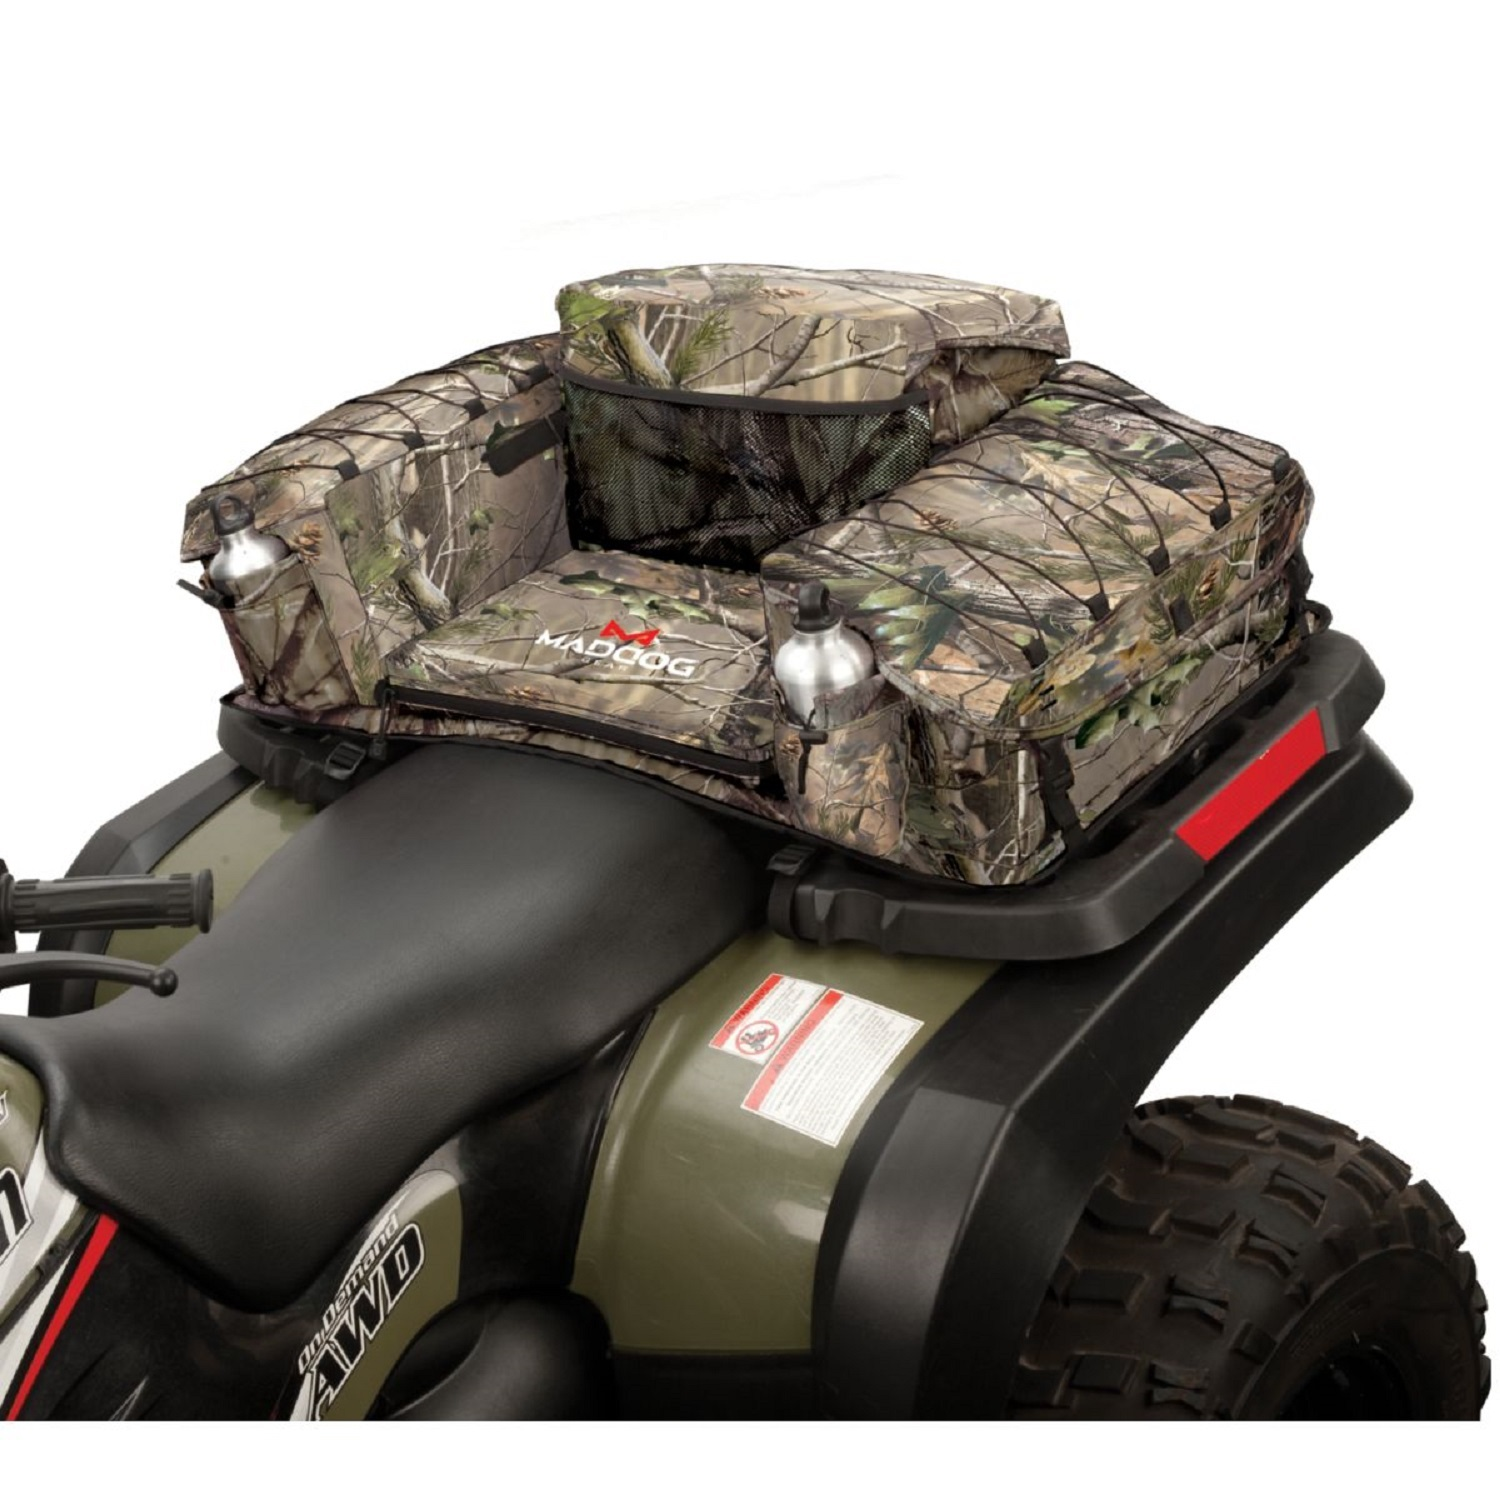 MadDog Gear ATV Rear Padded Bottom Bag RealTree APG Camo